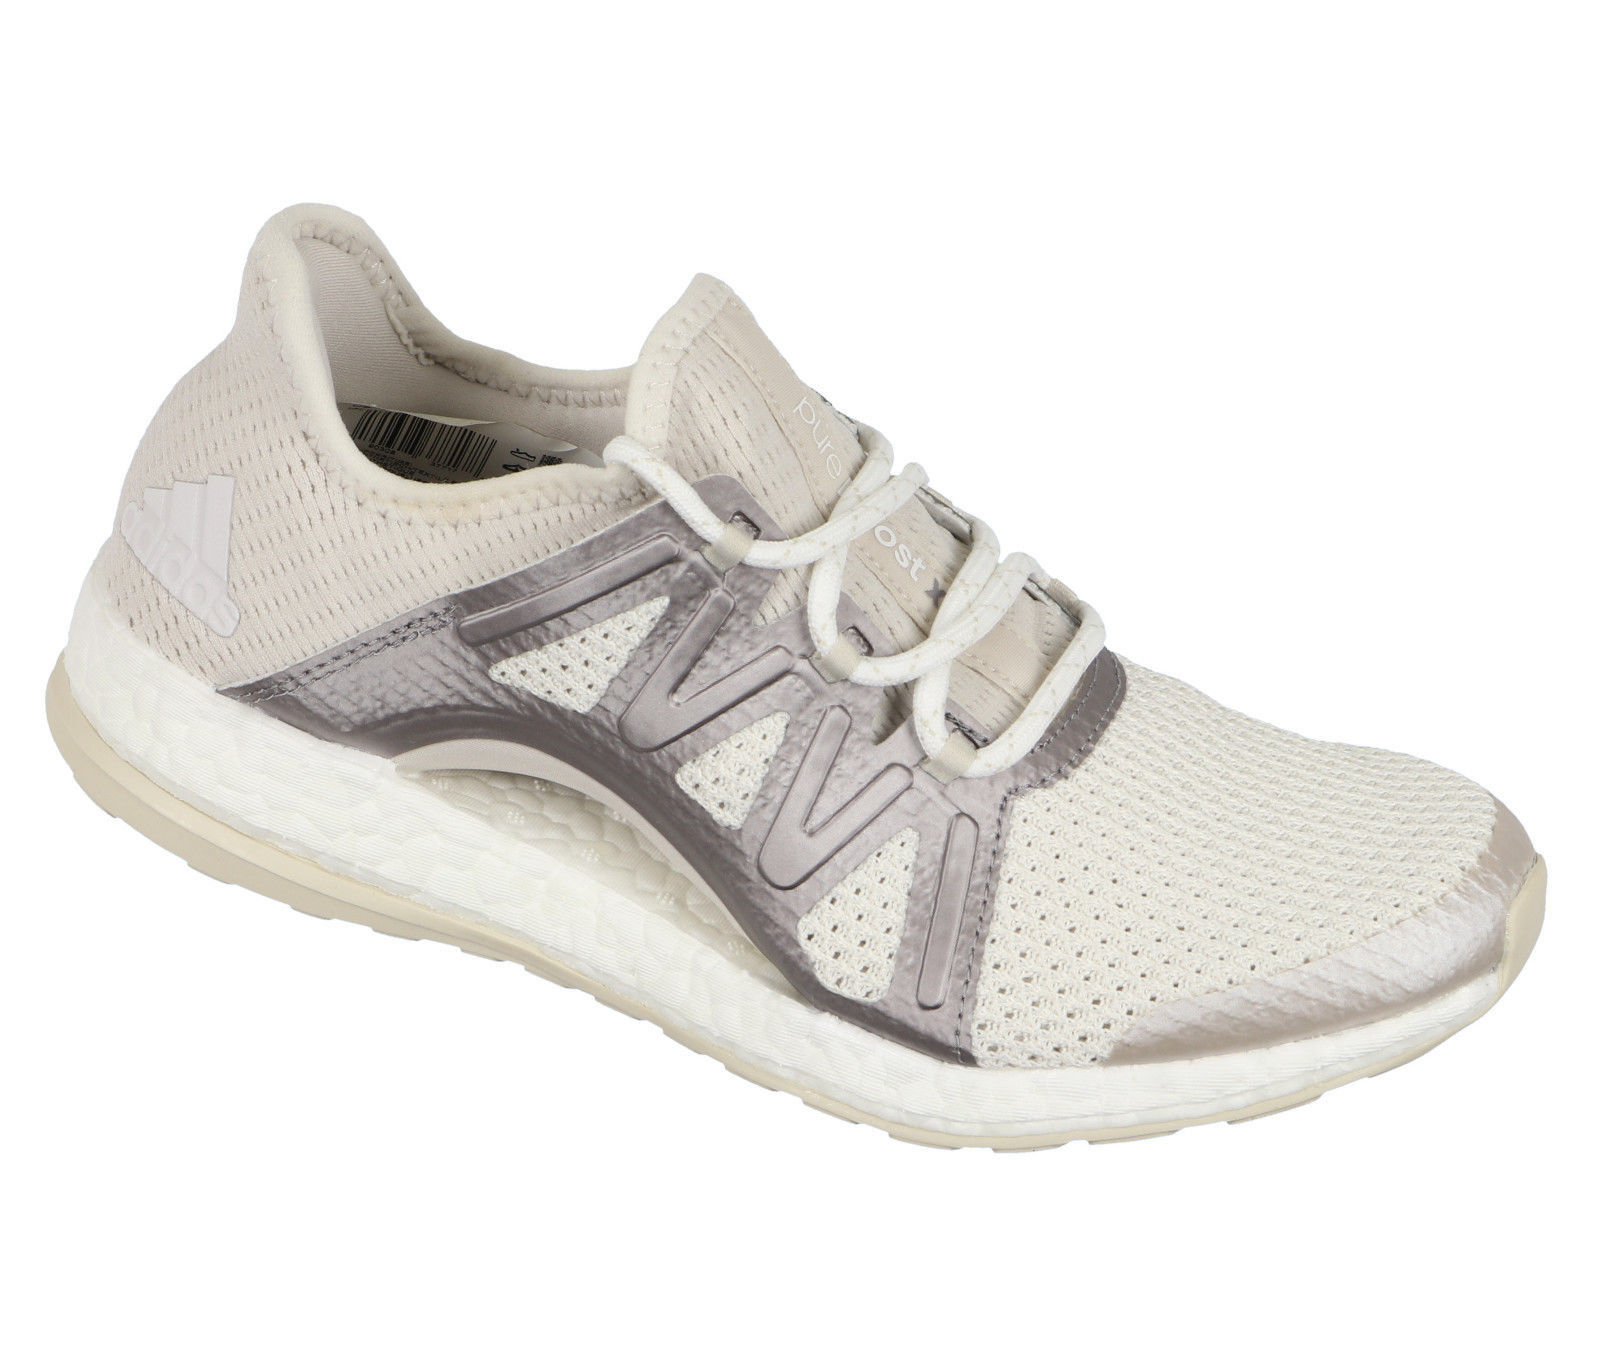 4c741a7f9a6c2 ADIDAS Women s PureBOOST Xpose Running Shoes and 50 similar items. S l1600